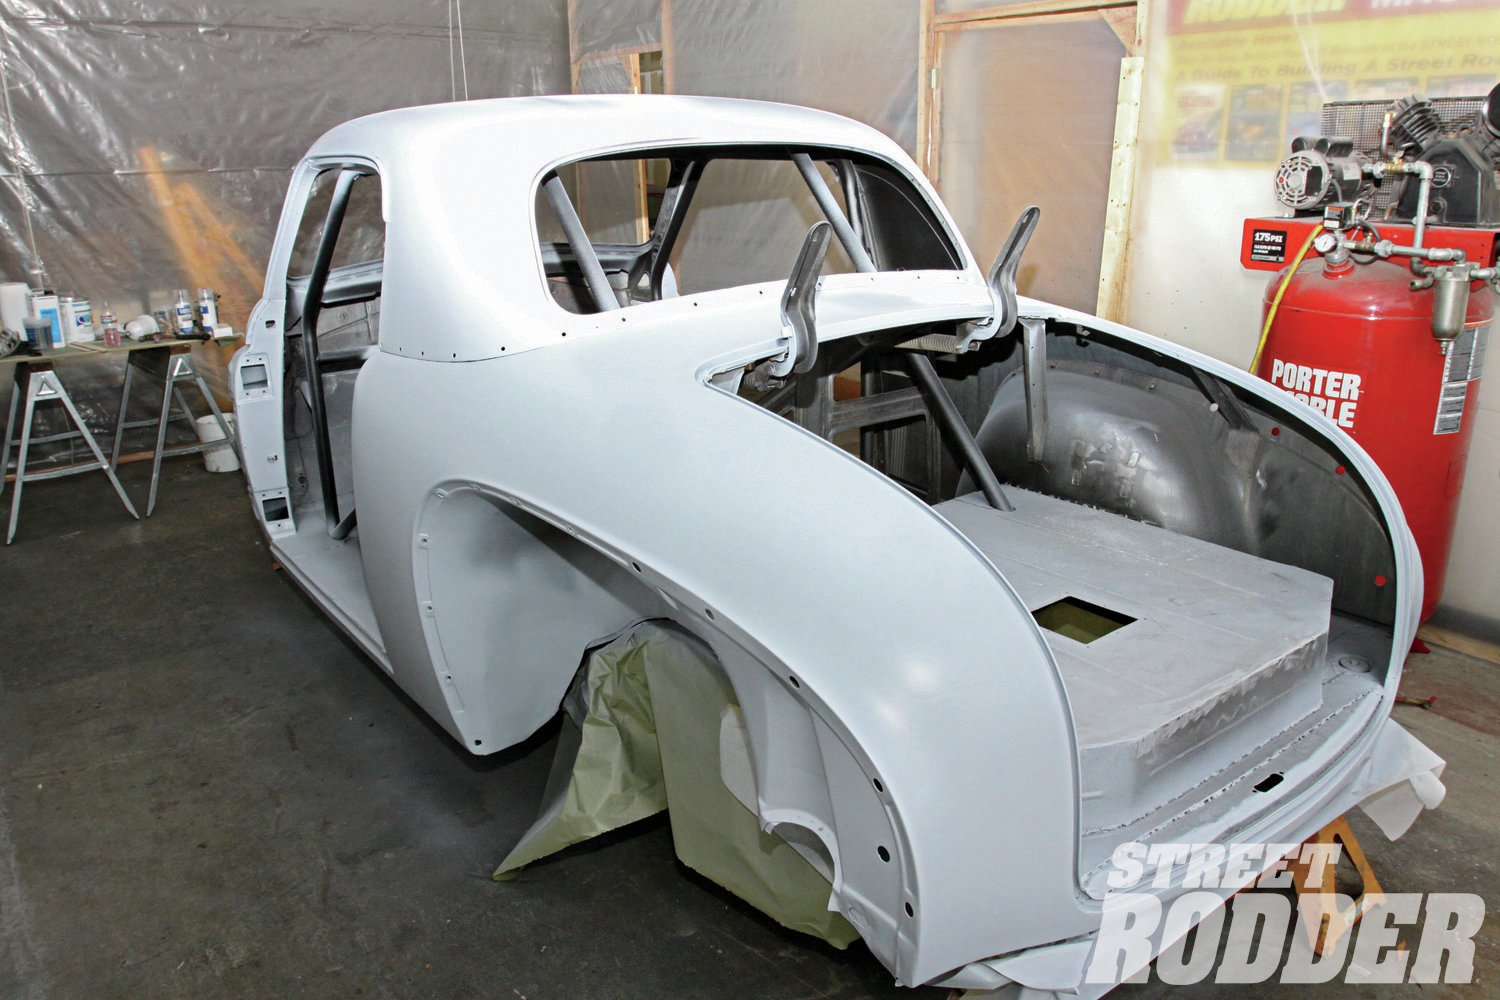 1. After a thorough sanding, Jake Brazille shot the bare body of our Plymouth with PPG's DP90LF epoxy primer, followed by two coats of their D839 Primer Surfacer to build the surface for block sanding.